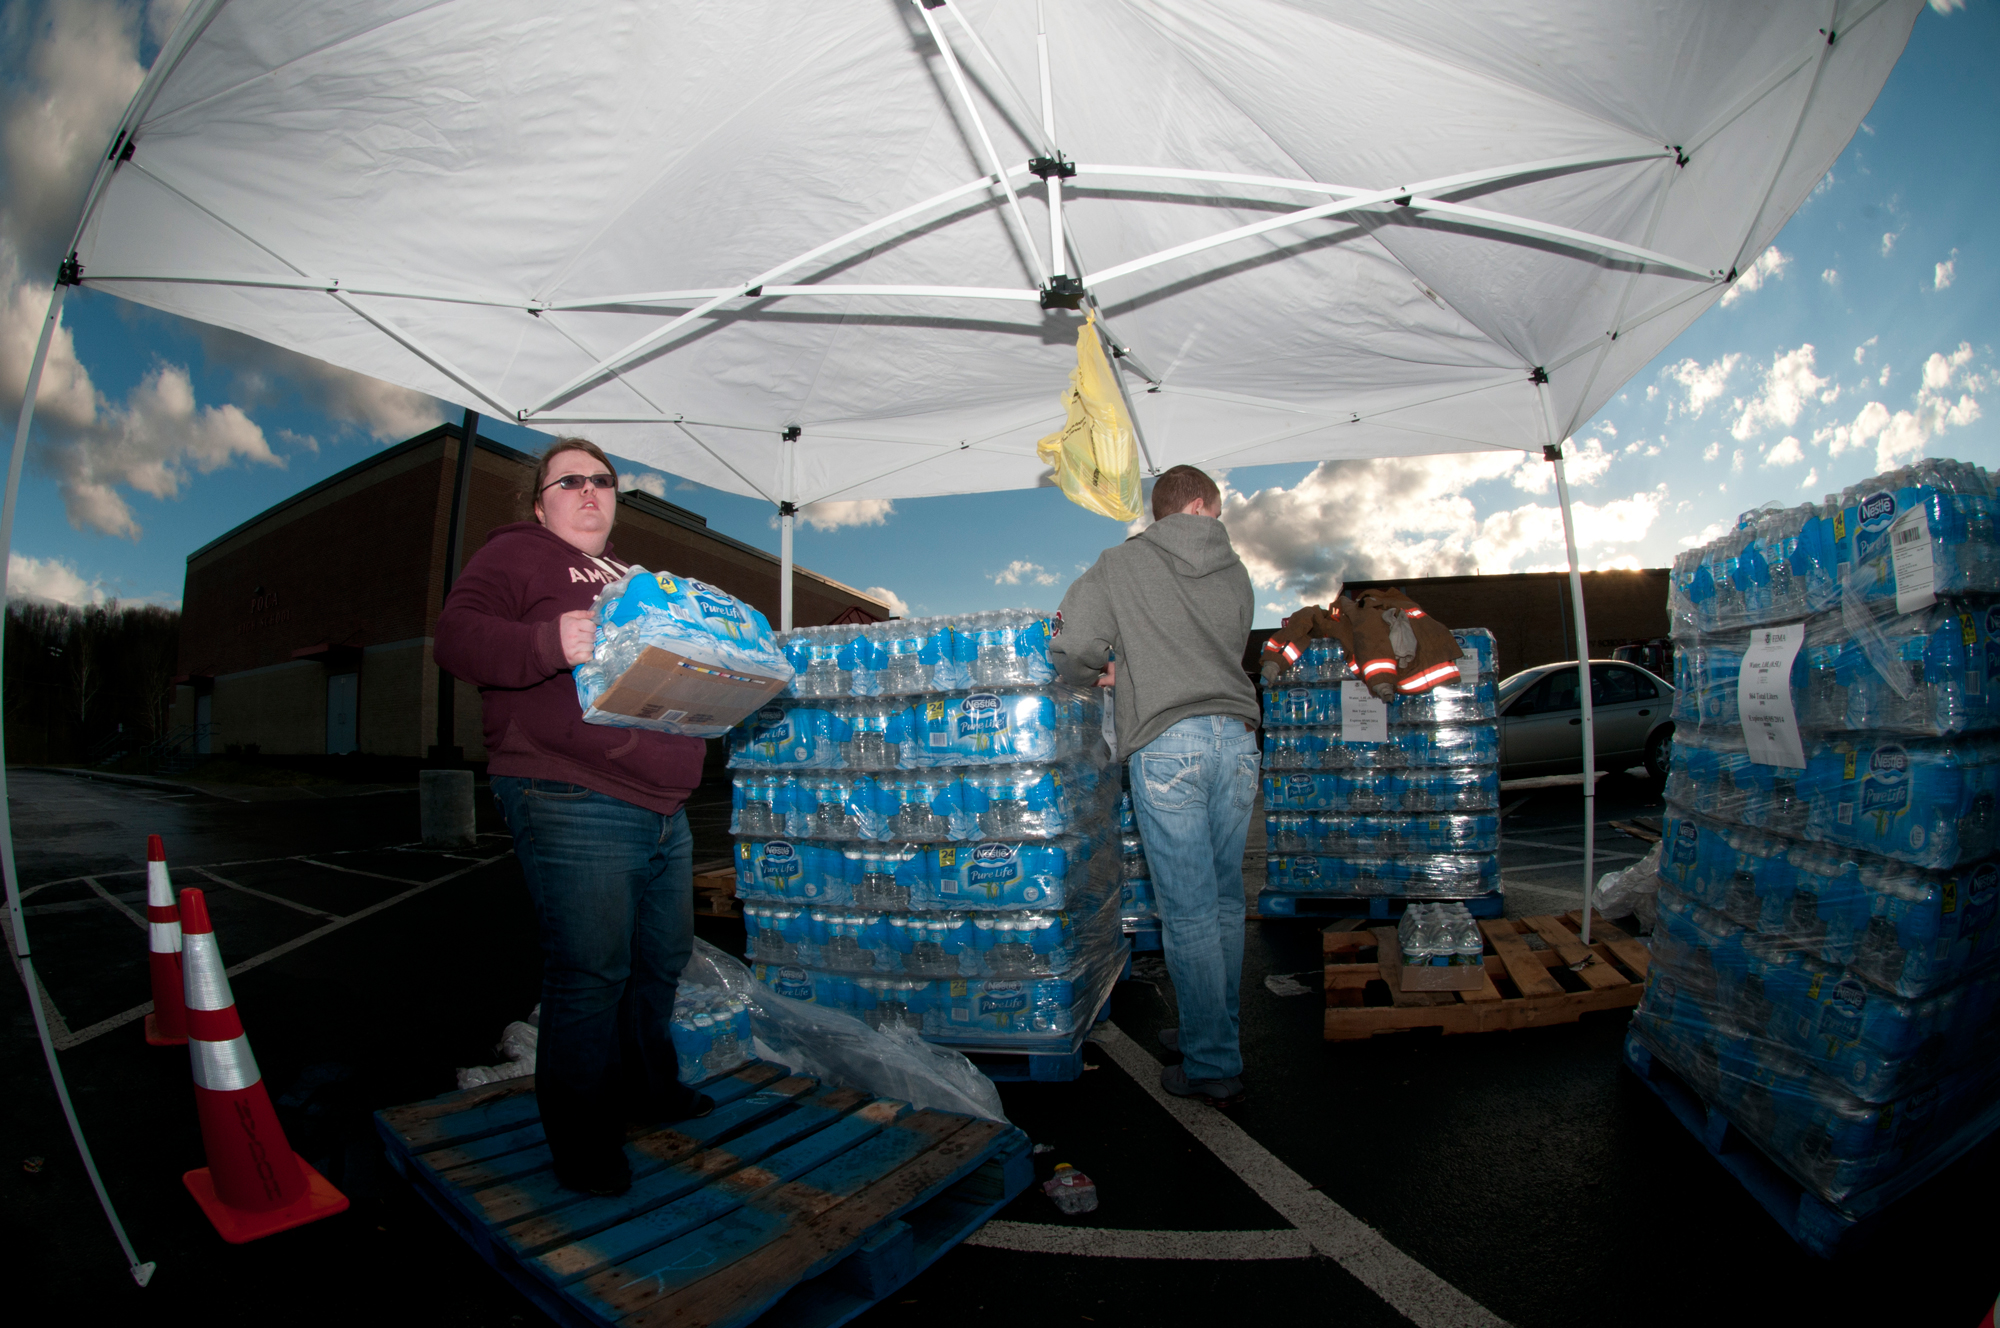 Living on earth bad data for bad water bethany whisman and blake kenney both of poca w volunteer by handing out cases of bottled water to those affected by the elk river water publicscrutiny Image collections